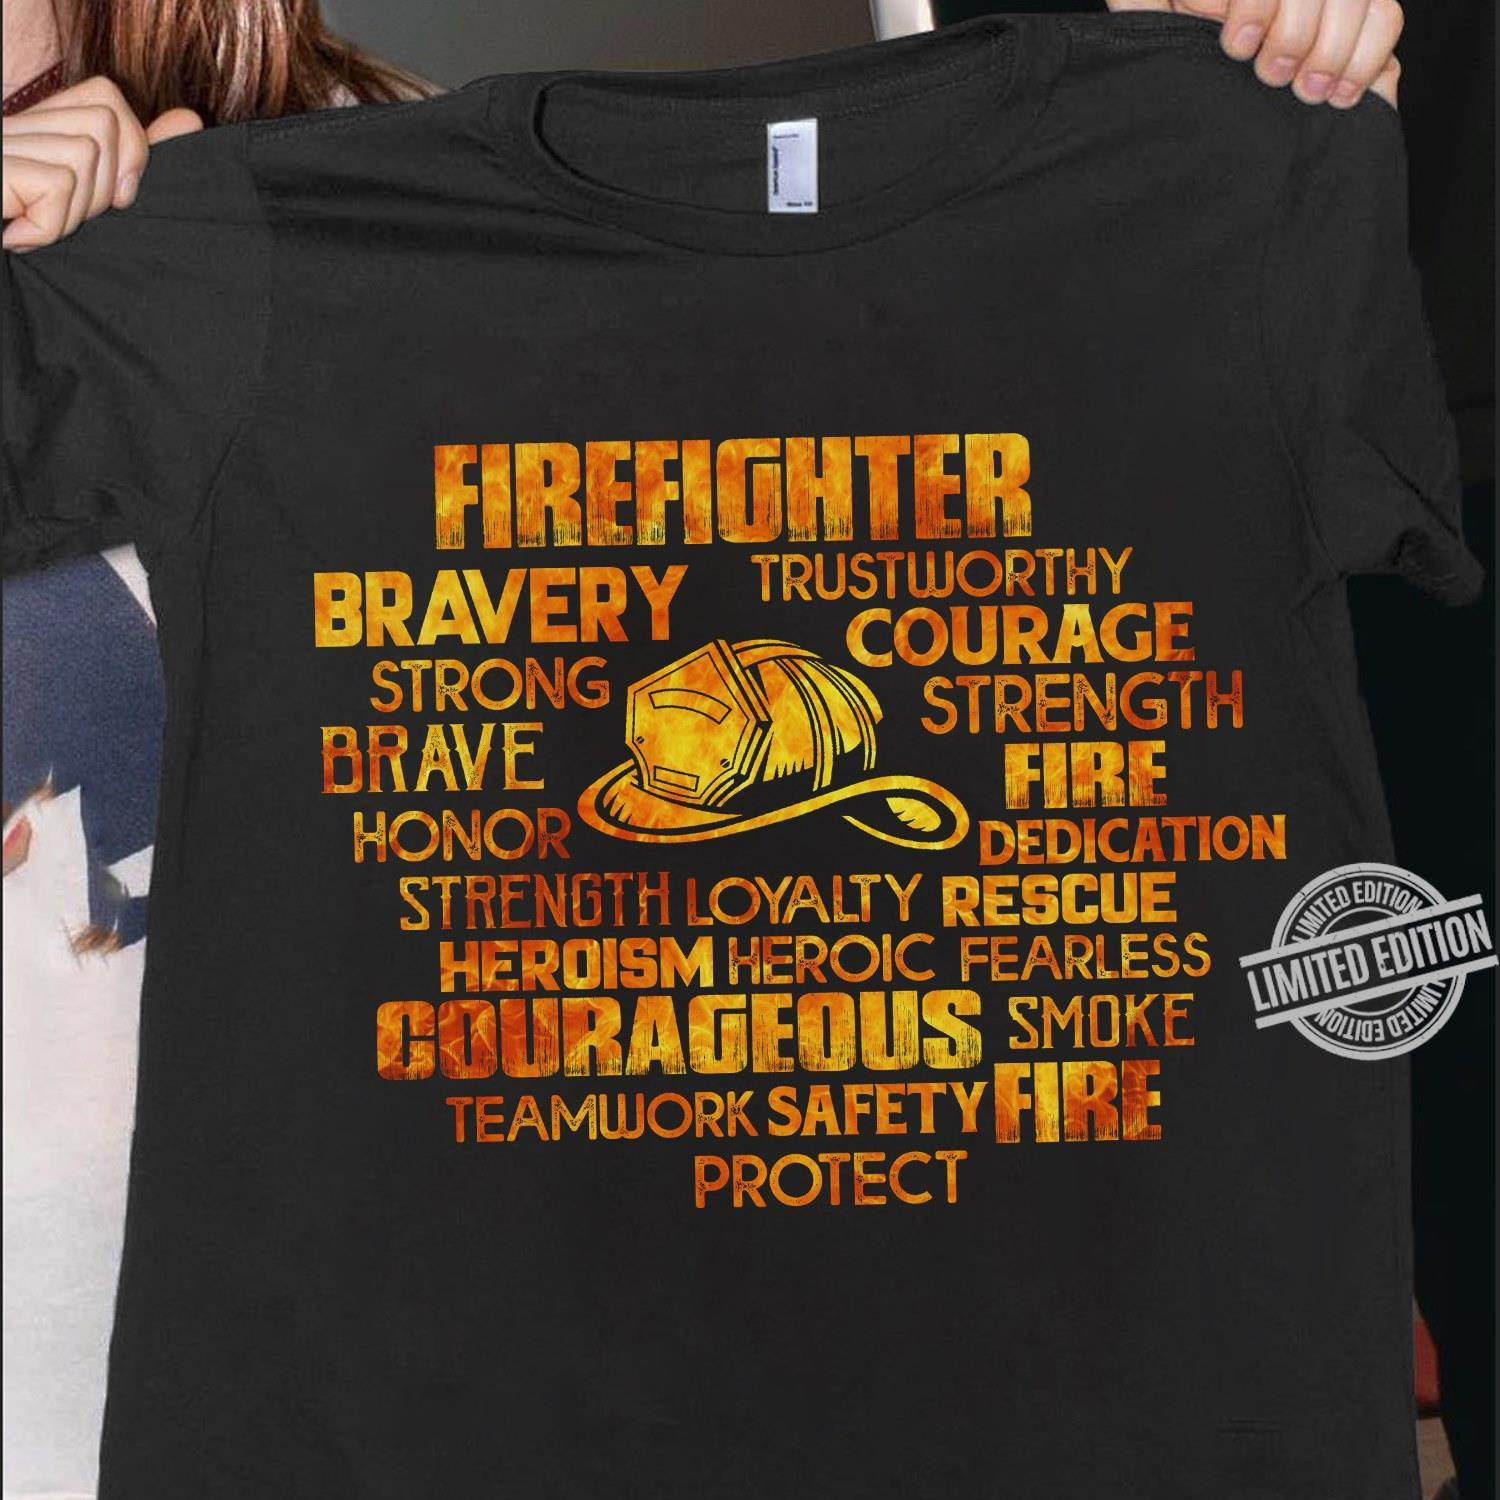 Firefighter Bravery Strong Brave Honor Courage Strength Fire Shirt